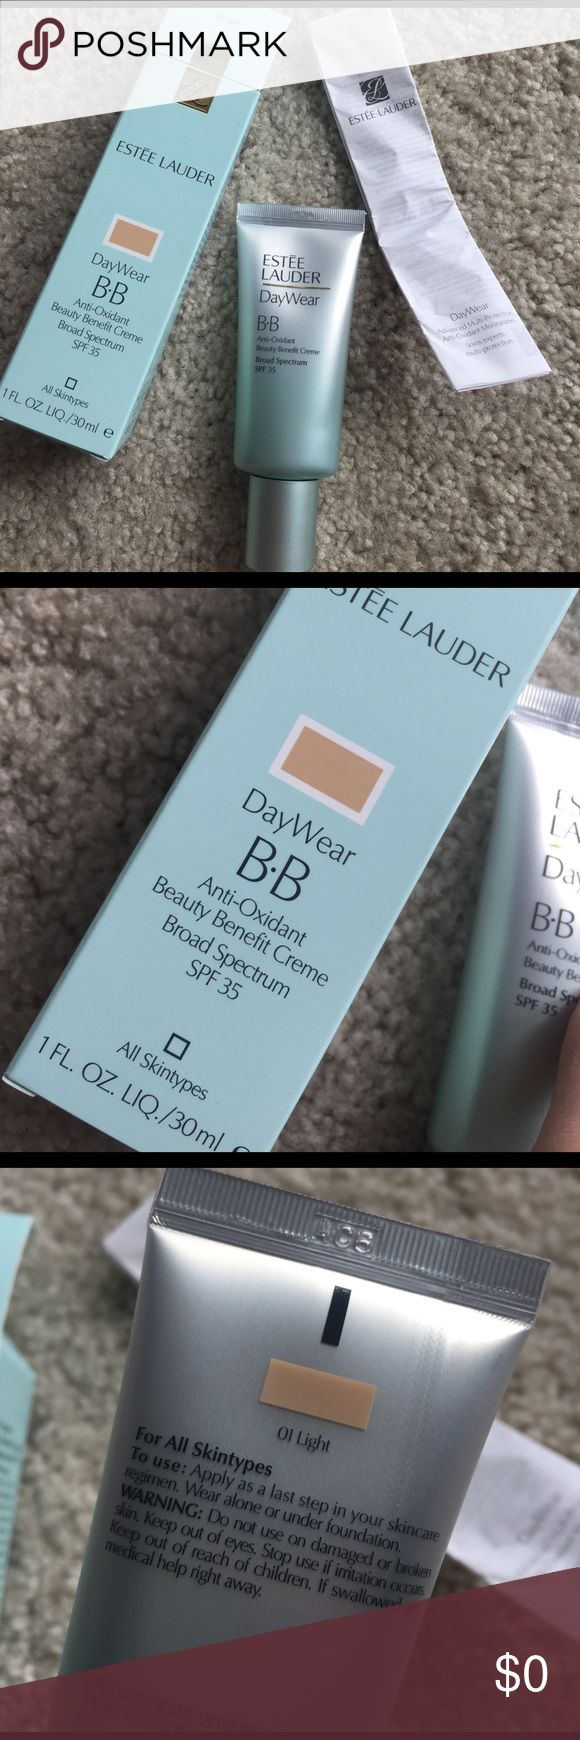 Estée Lauder DayWear BB creme. Spf 35 Full size new in box. Never opened new. Purchased at Macy's in March 2017. 1oz. Spf 35. Color 01 light. Moisturize, illuminates, protects skin. For all skin types. Oil free. No trades. Estee Lauder Makeup Foundation